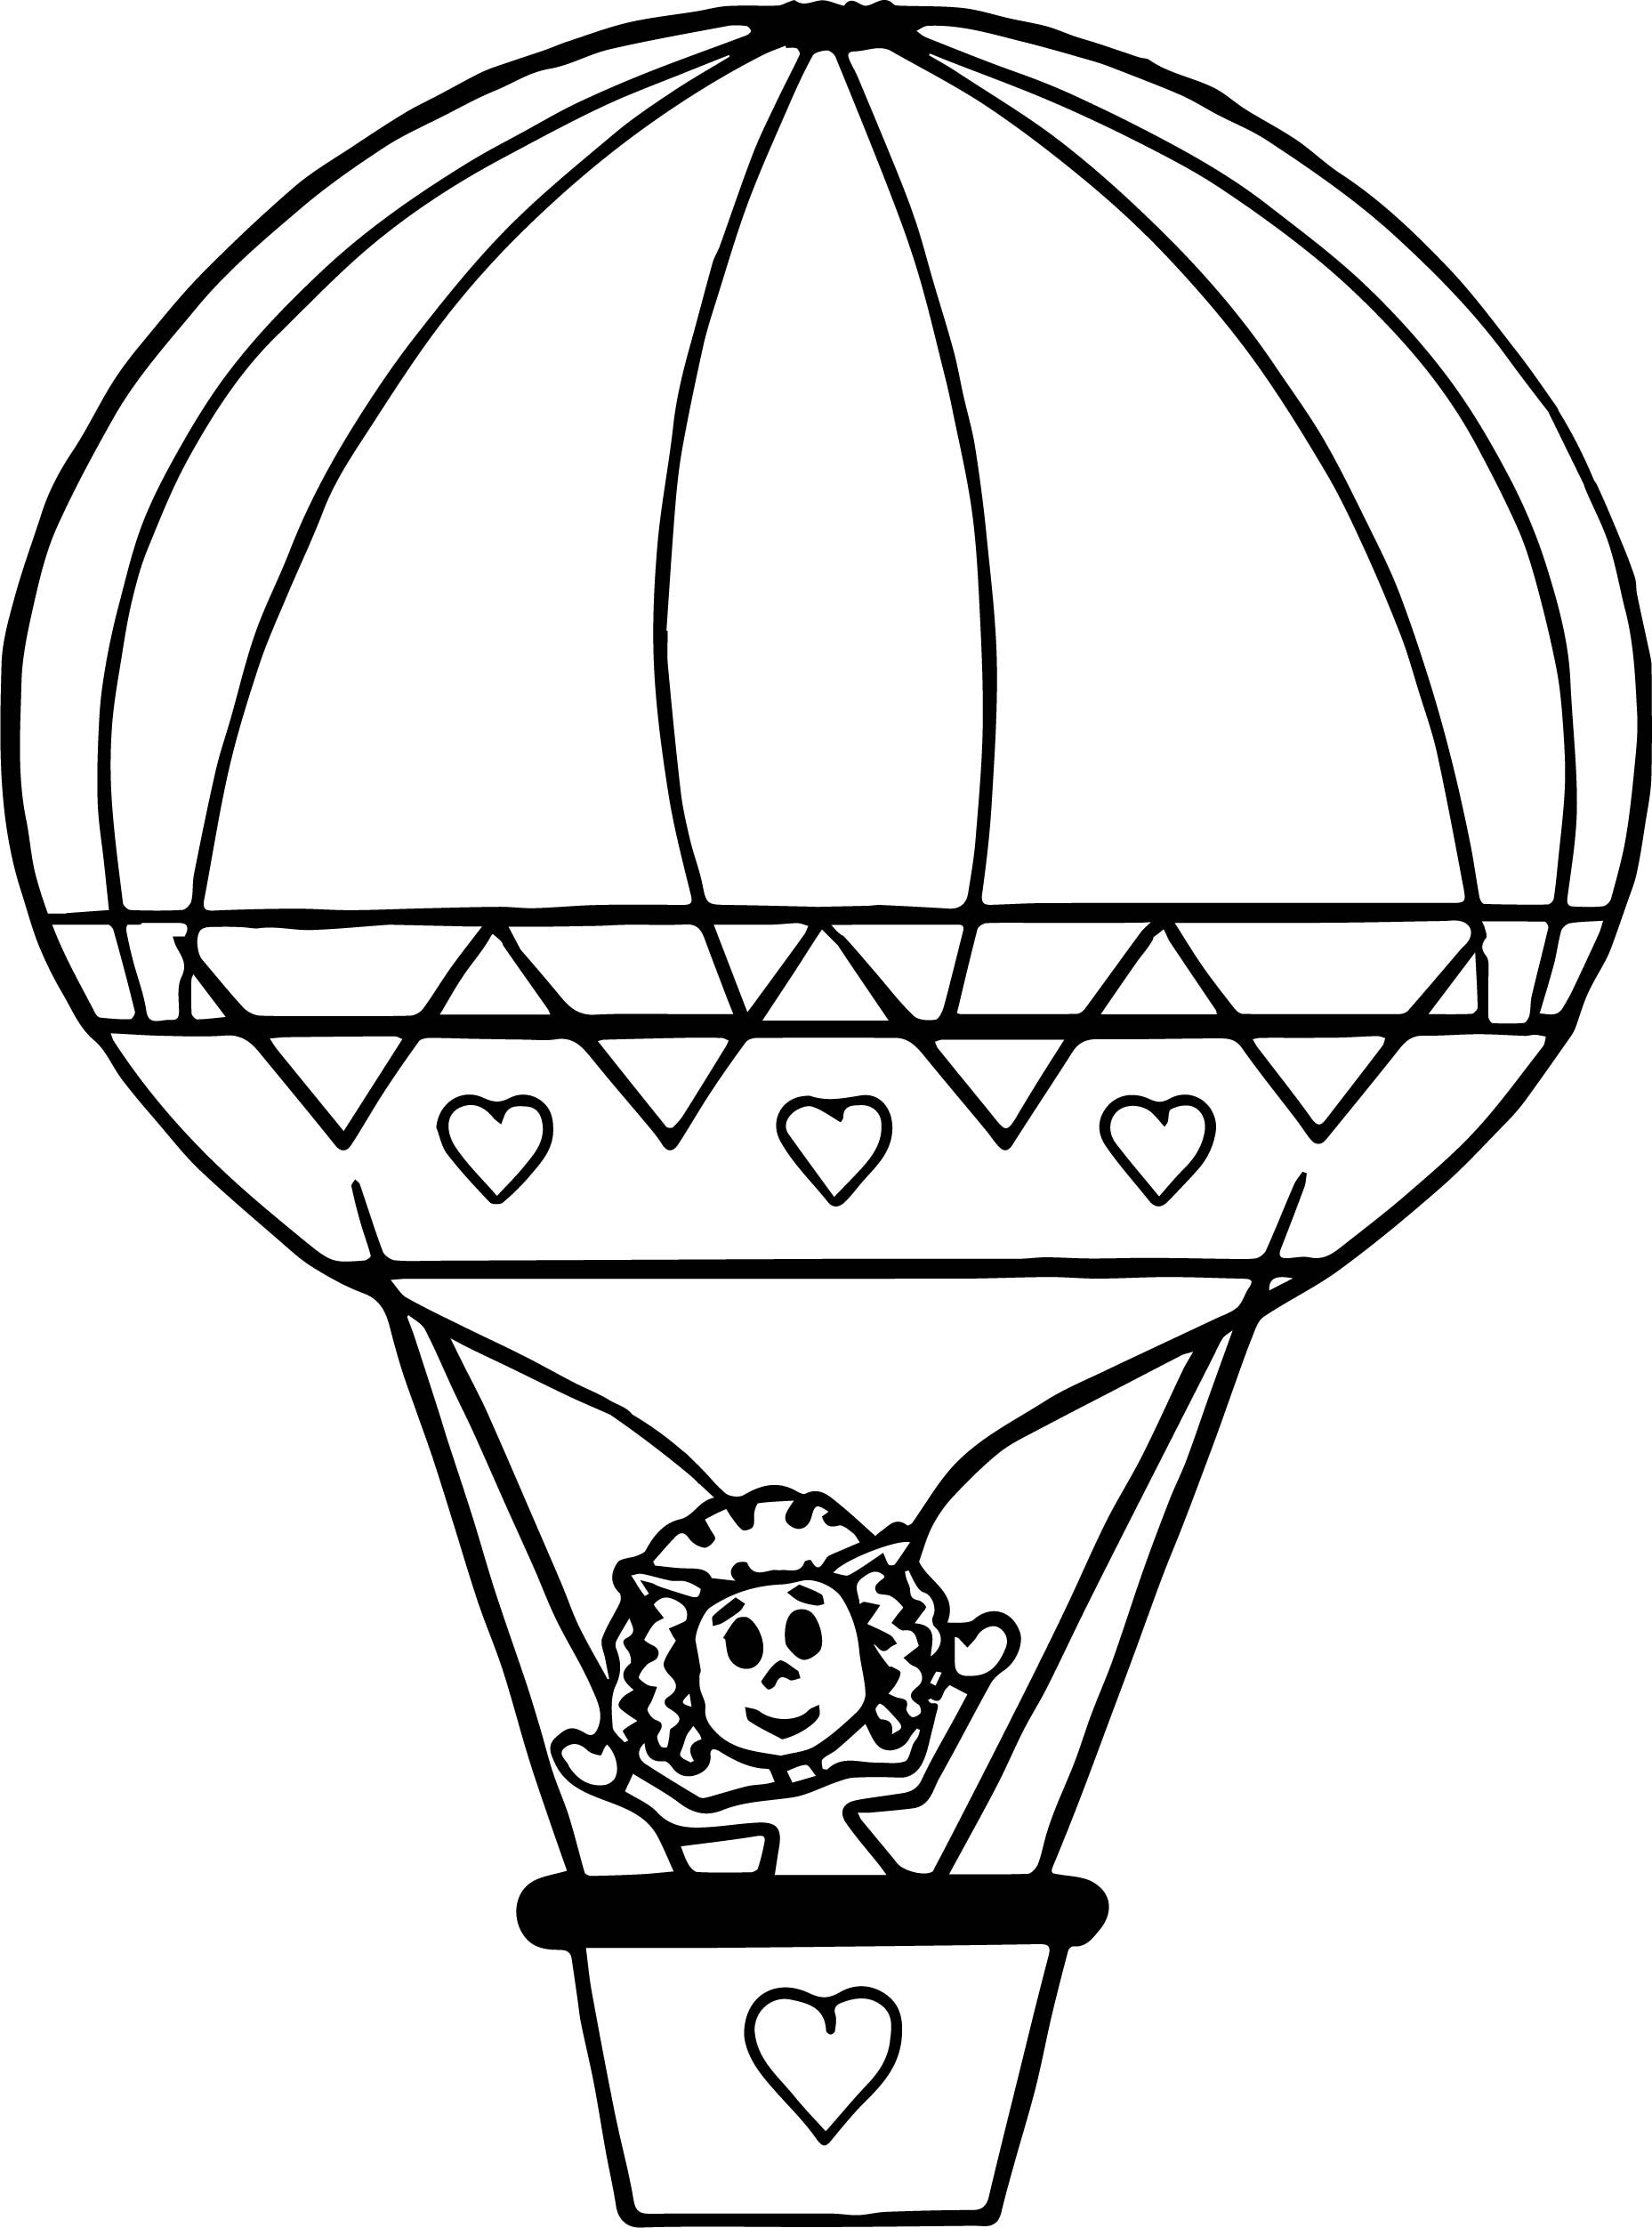 Hot Air Balloon Coloring Page Bertmilne Download Of Fresh Hot Air Balloons Coloring Pages Collection to Print